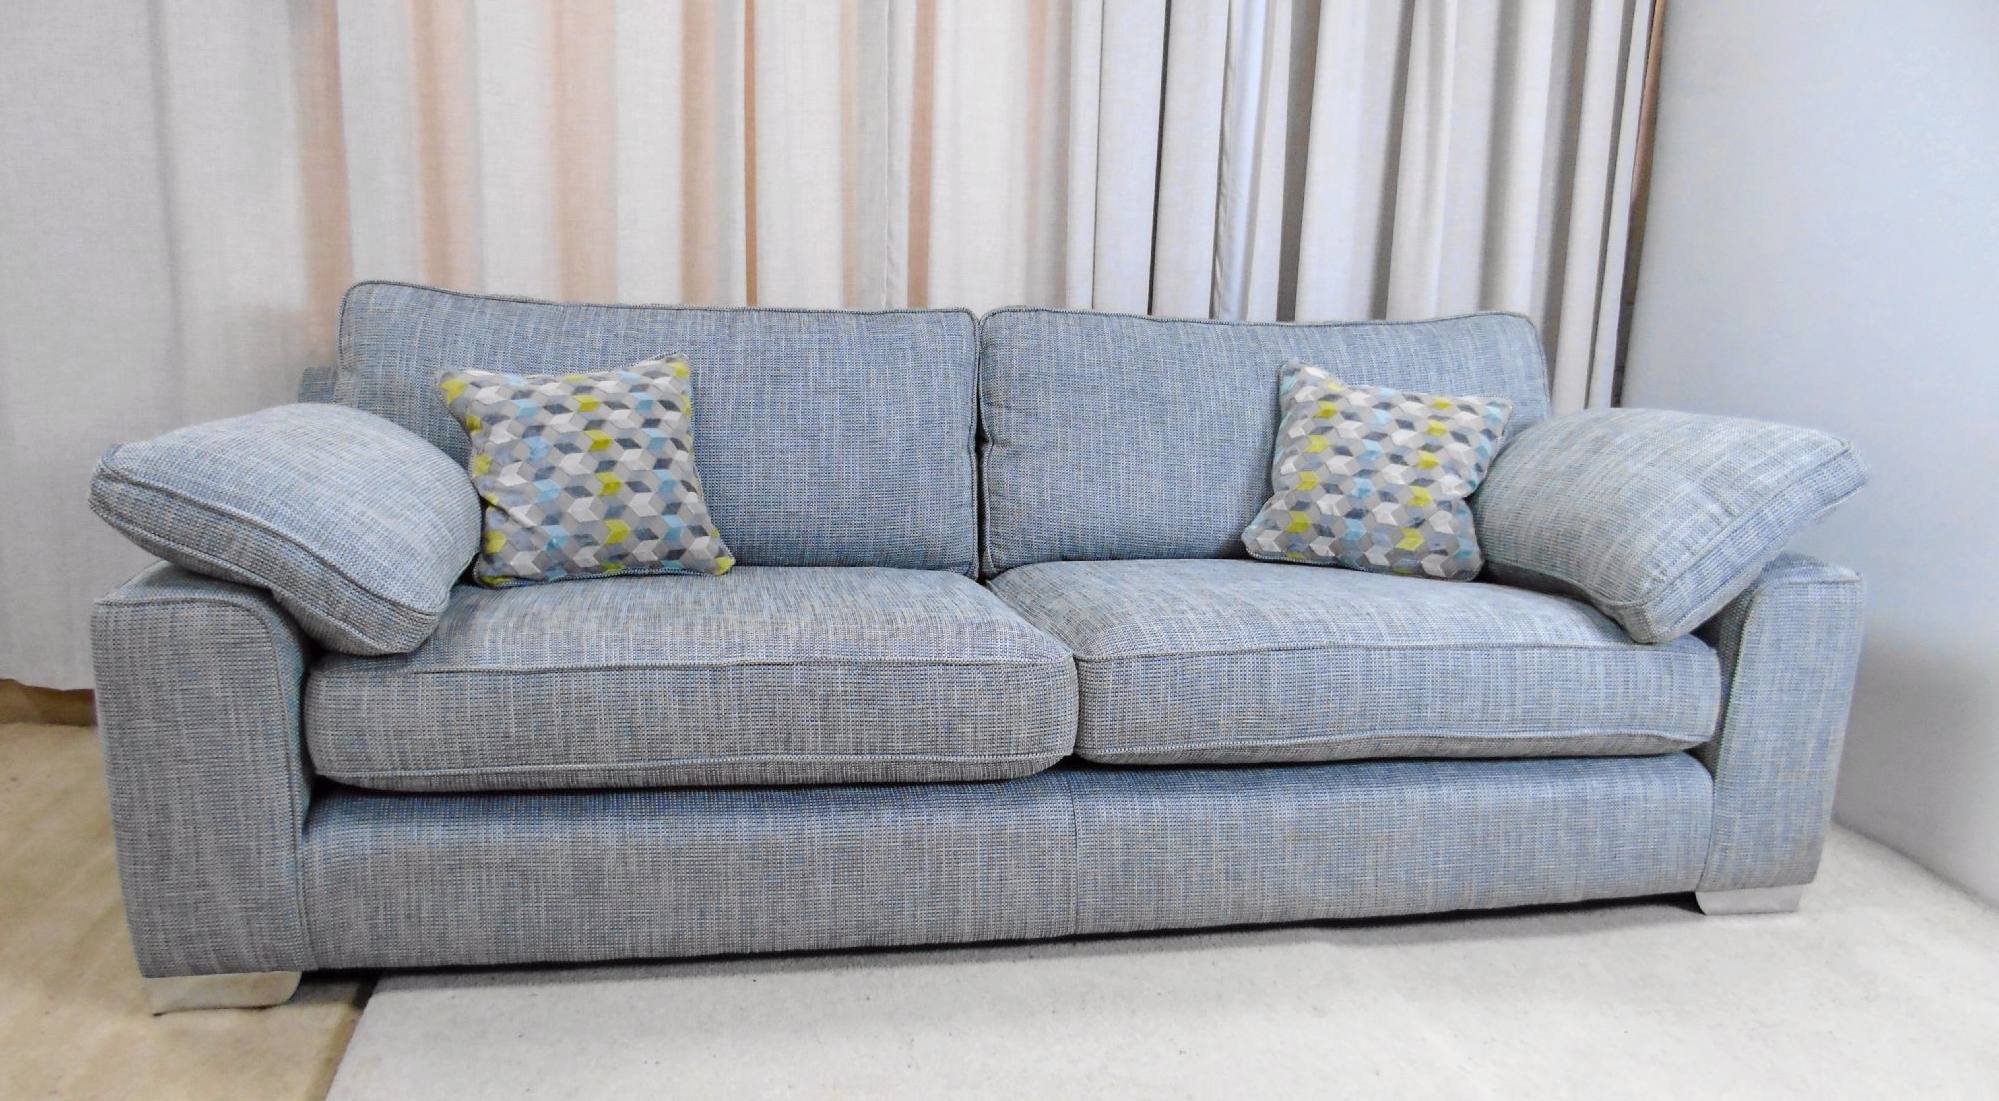 Photos of Large 4 Seater Sofas (Showing 12 of 20 Photos)